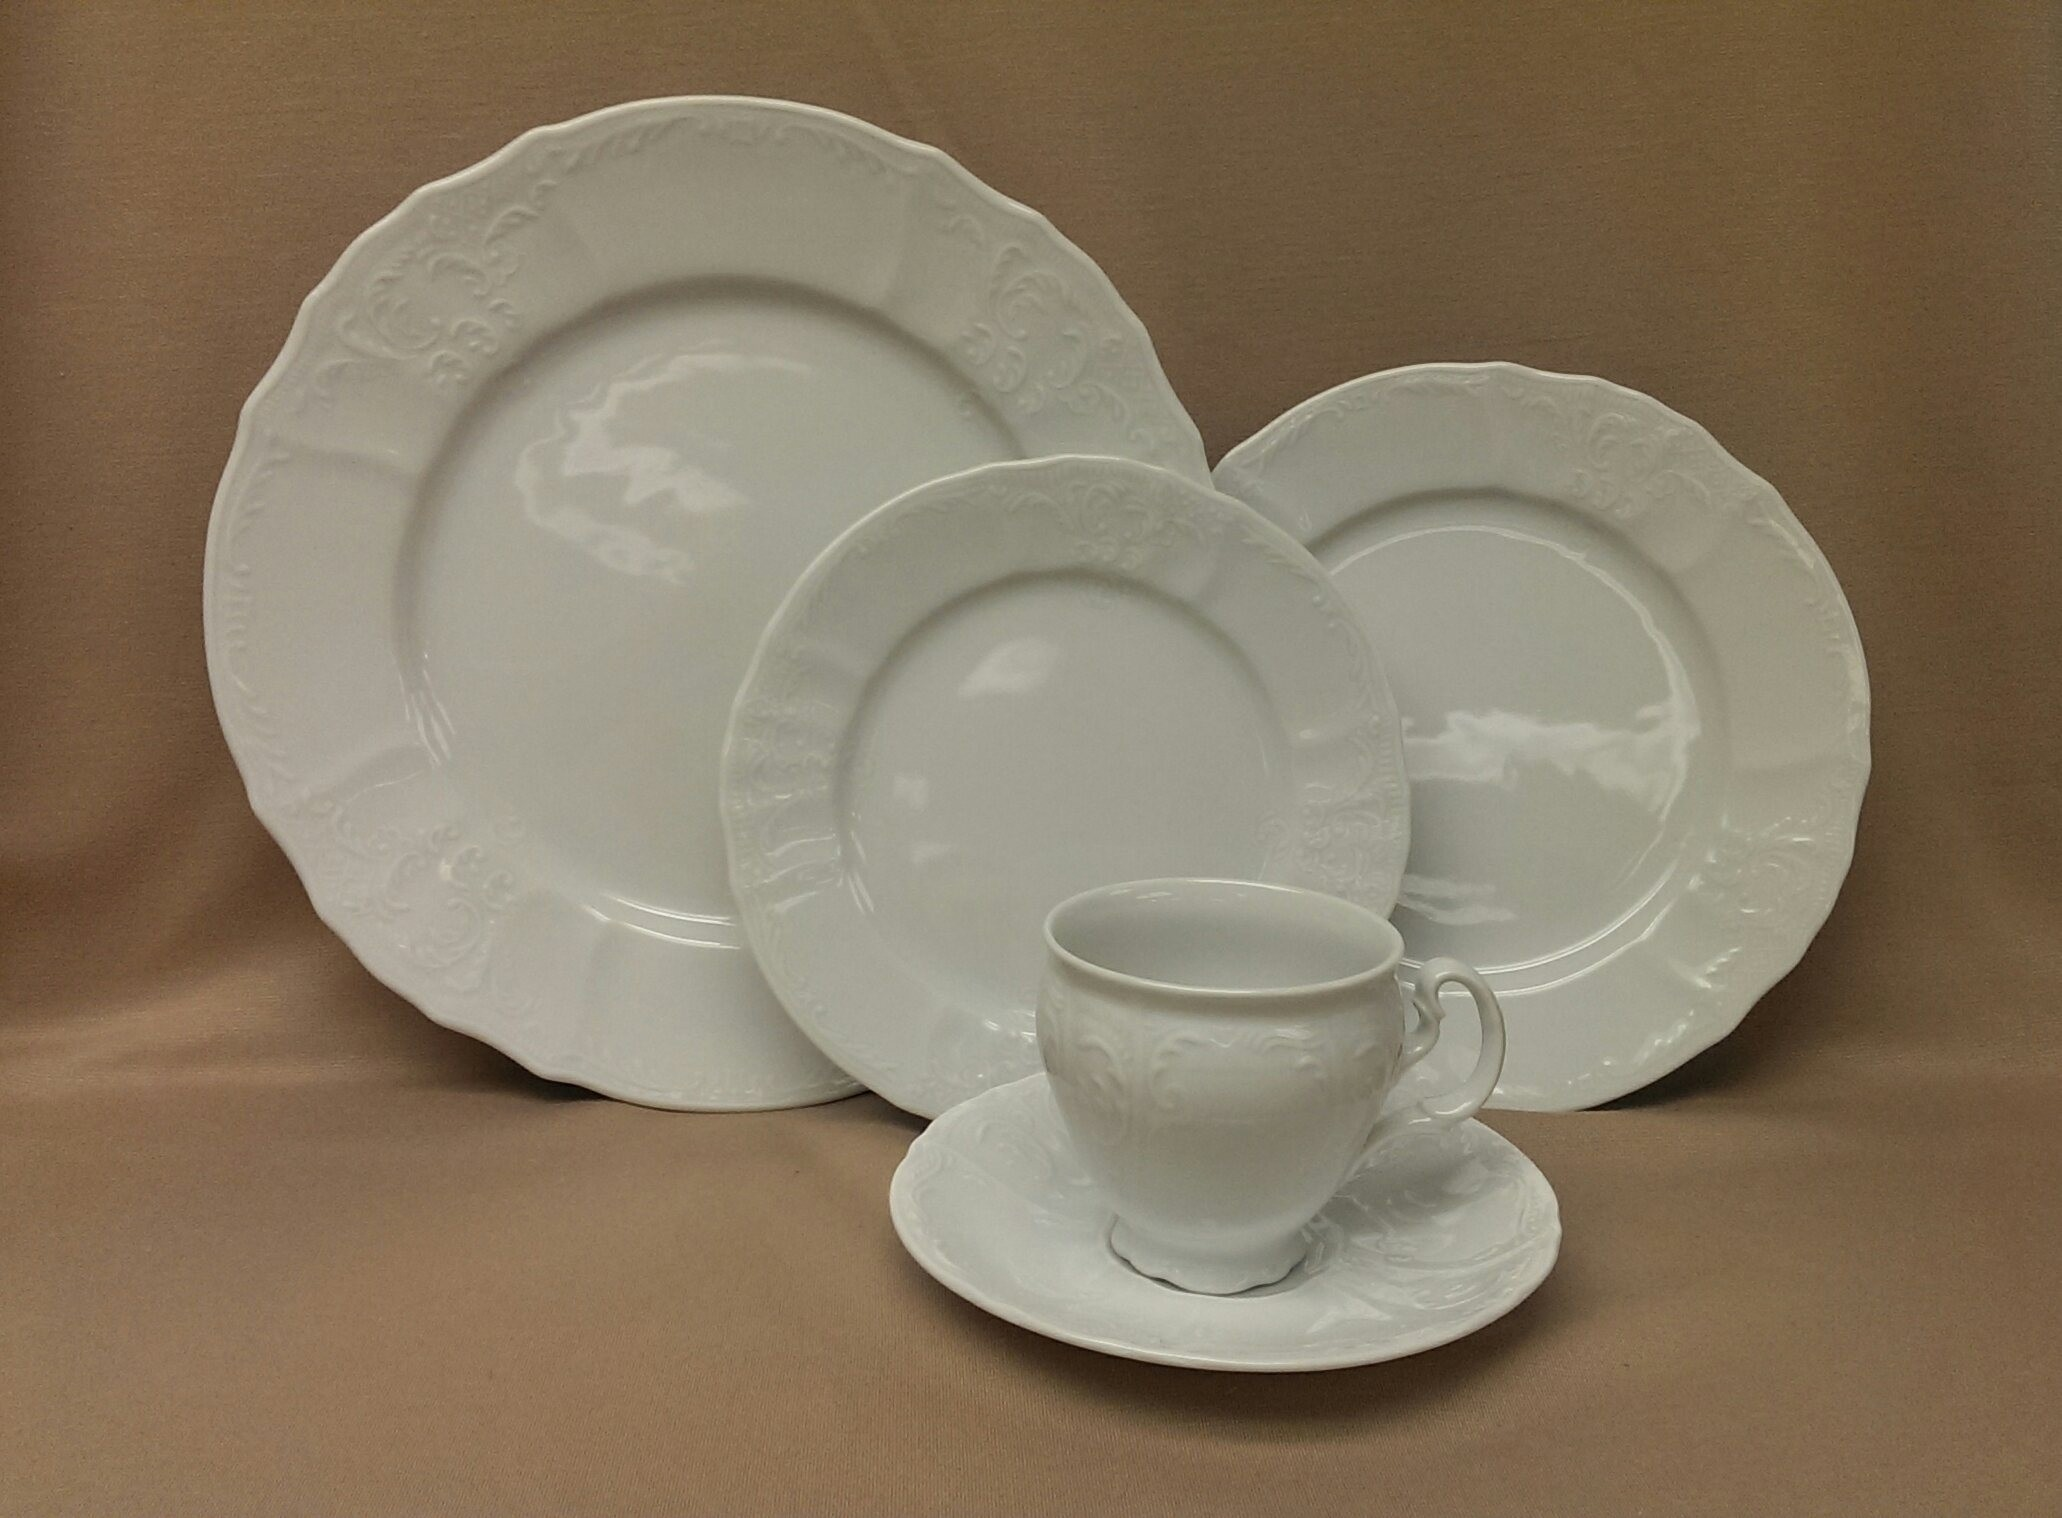 5 Piece Bernadotte Dinnerware Set & 5 Piece Bernadotte Dinnerware Set | Maryland China